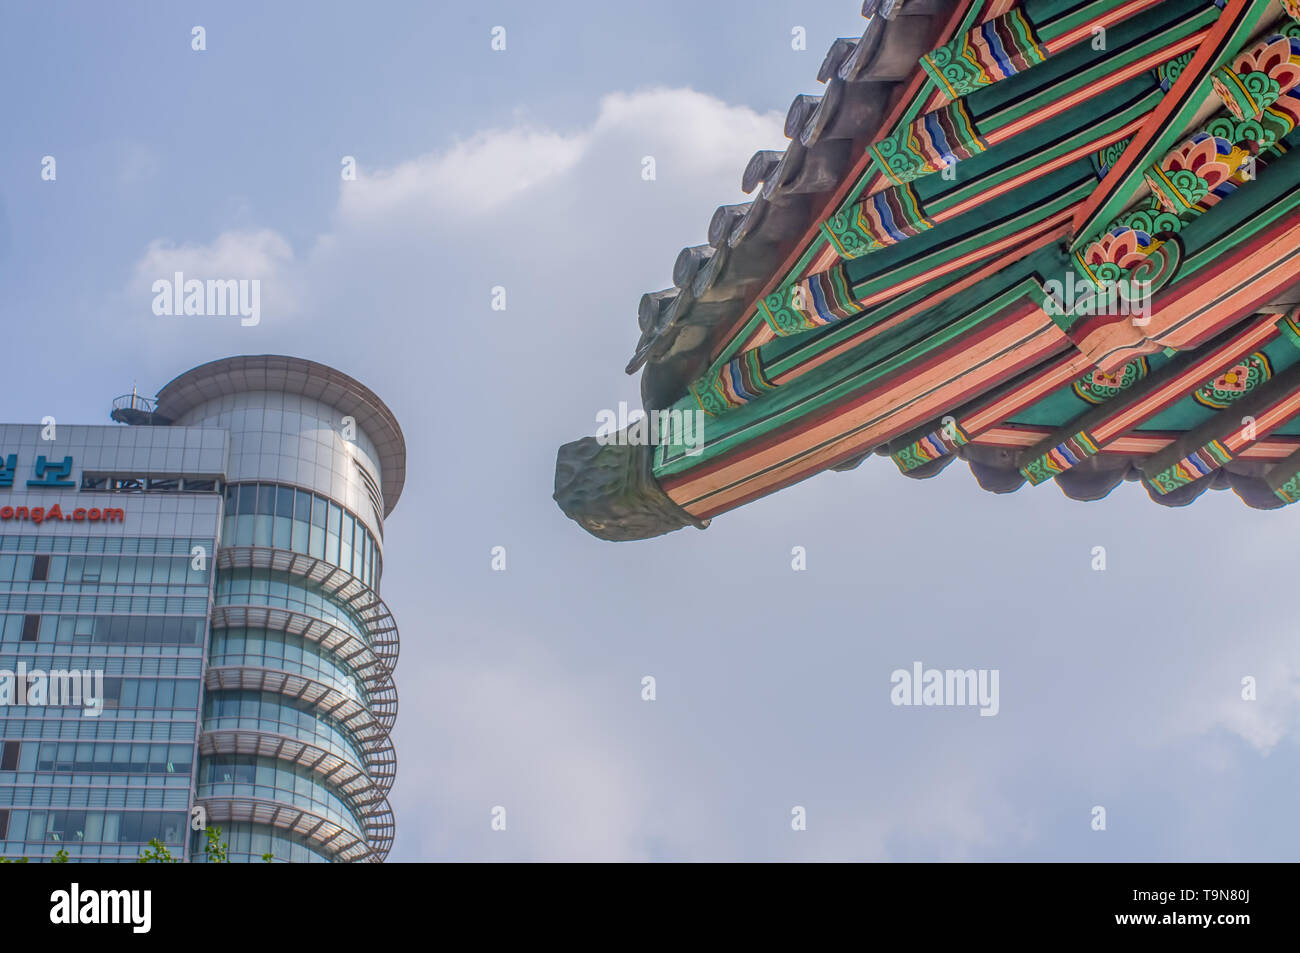 SEOUL / SOUTH KOREA - JUNE 24, 2013: Traditional temple with modern skyscraper in background - Historic culture and economic future - Seoul, South Kor - Stock Image